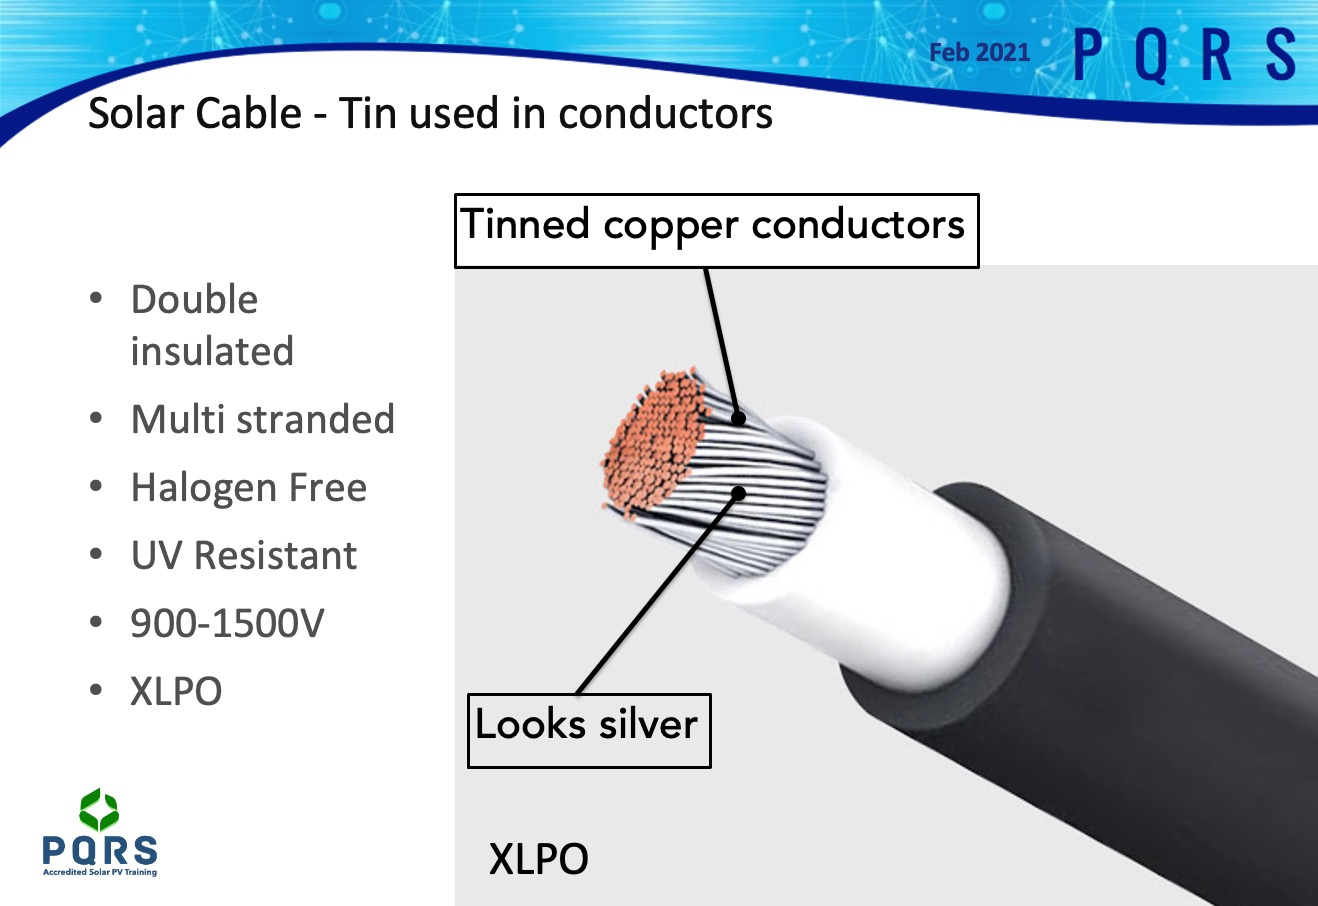 A Slide showing solar PV cable, which is discussed during the product section of the sales course